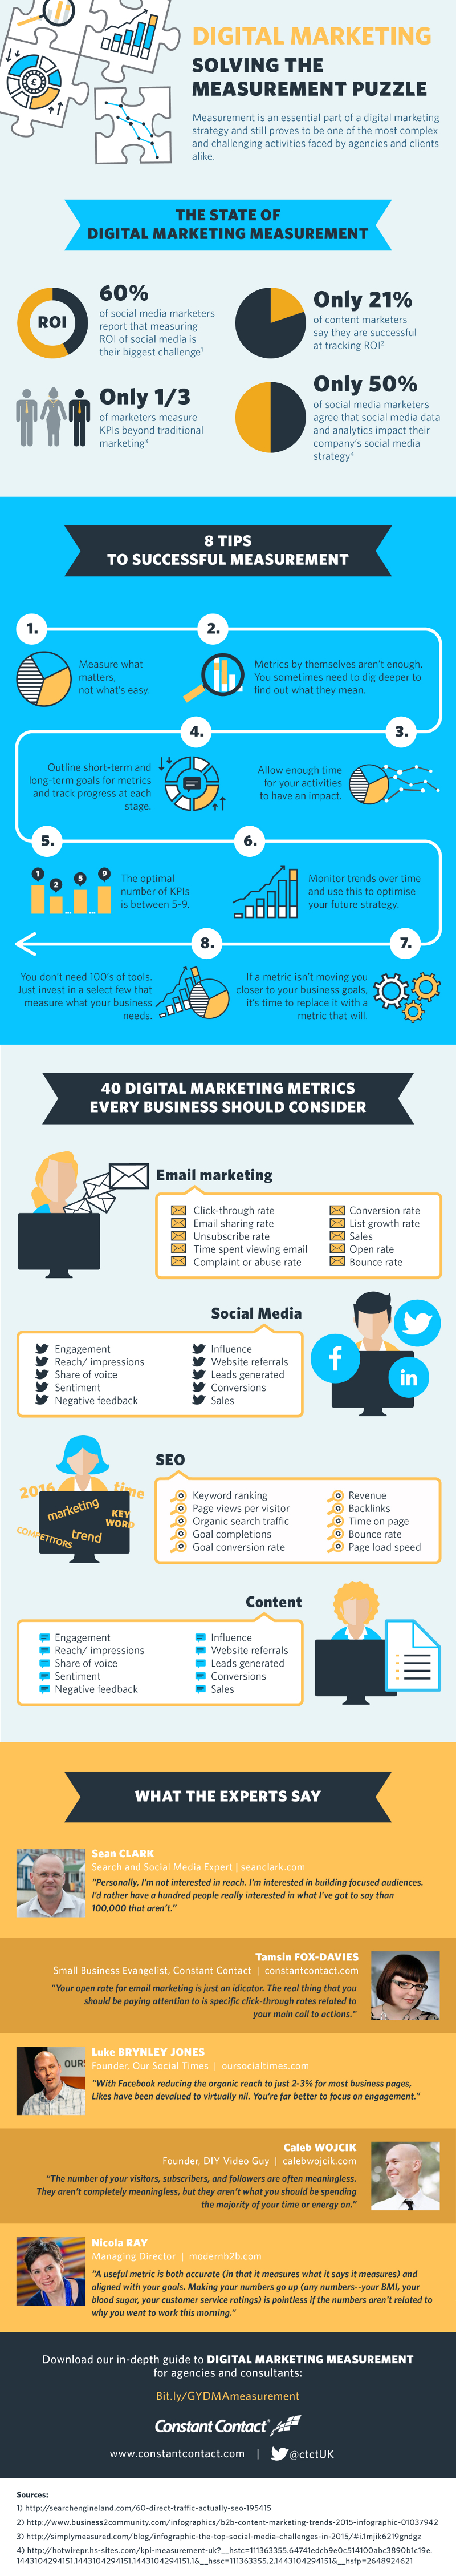 Digital-Marketing-Metrics